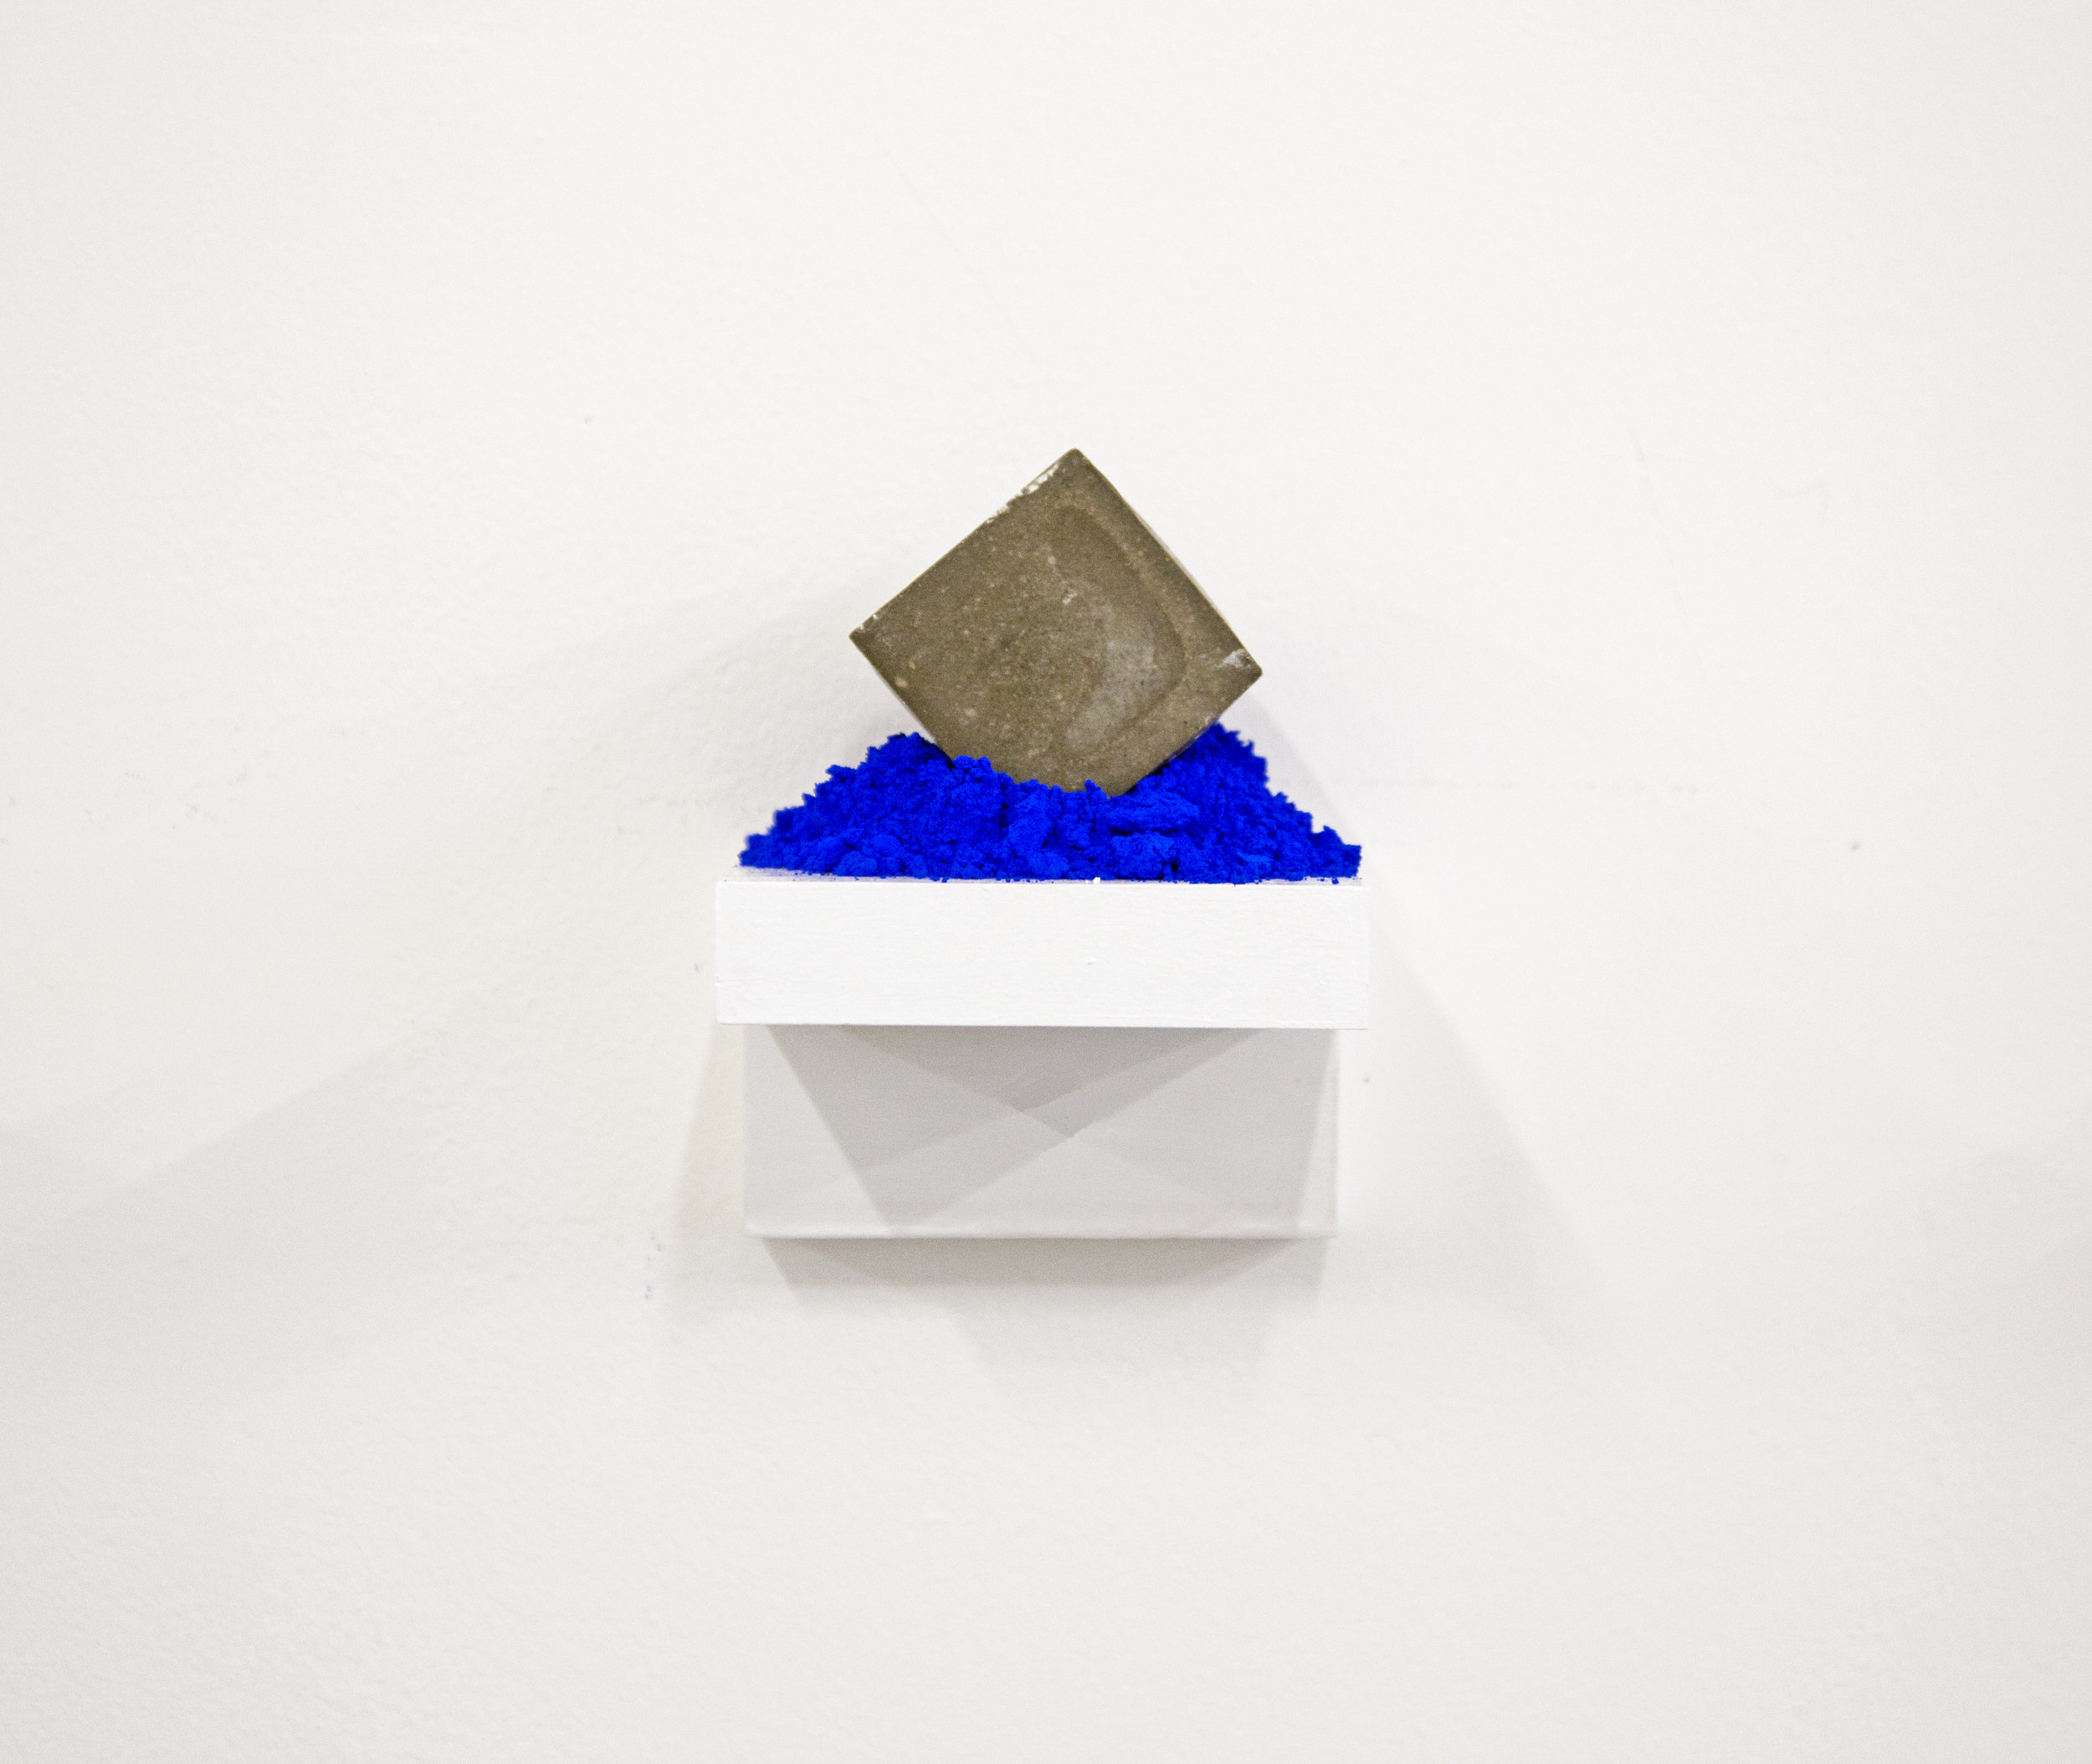 """""""You surrounded me with color Blue""""                   4x4x4 in, Concrete and Pigment on Wooden shelf, 2017"""